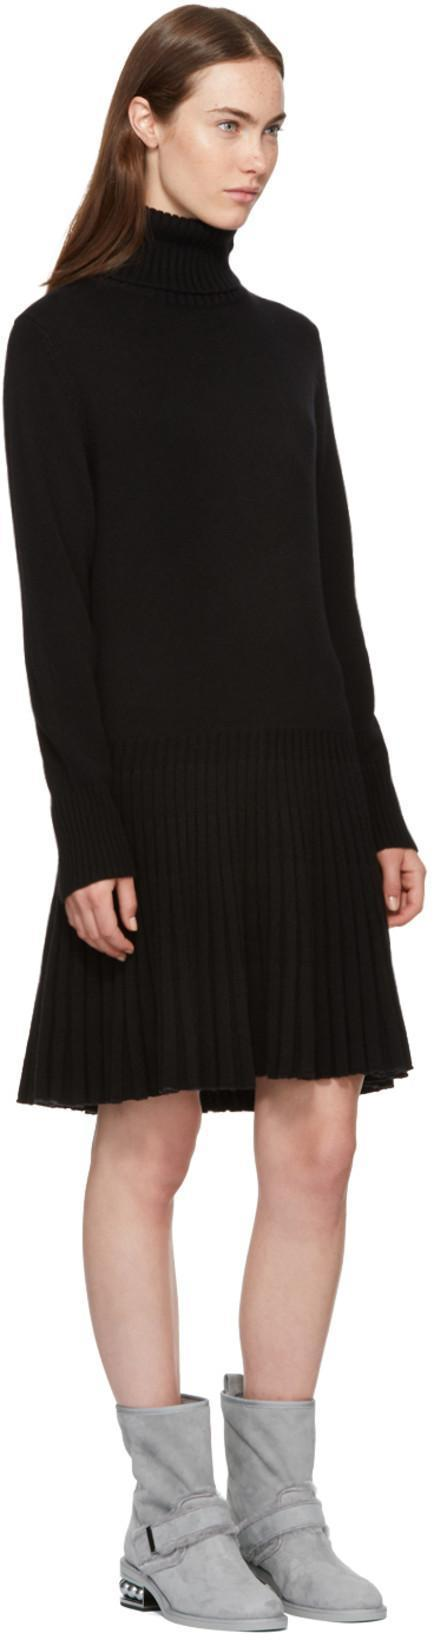 4ff54b246ca ChloÉ Iconic Cashmere Turtleneck Sweater Dress In 001